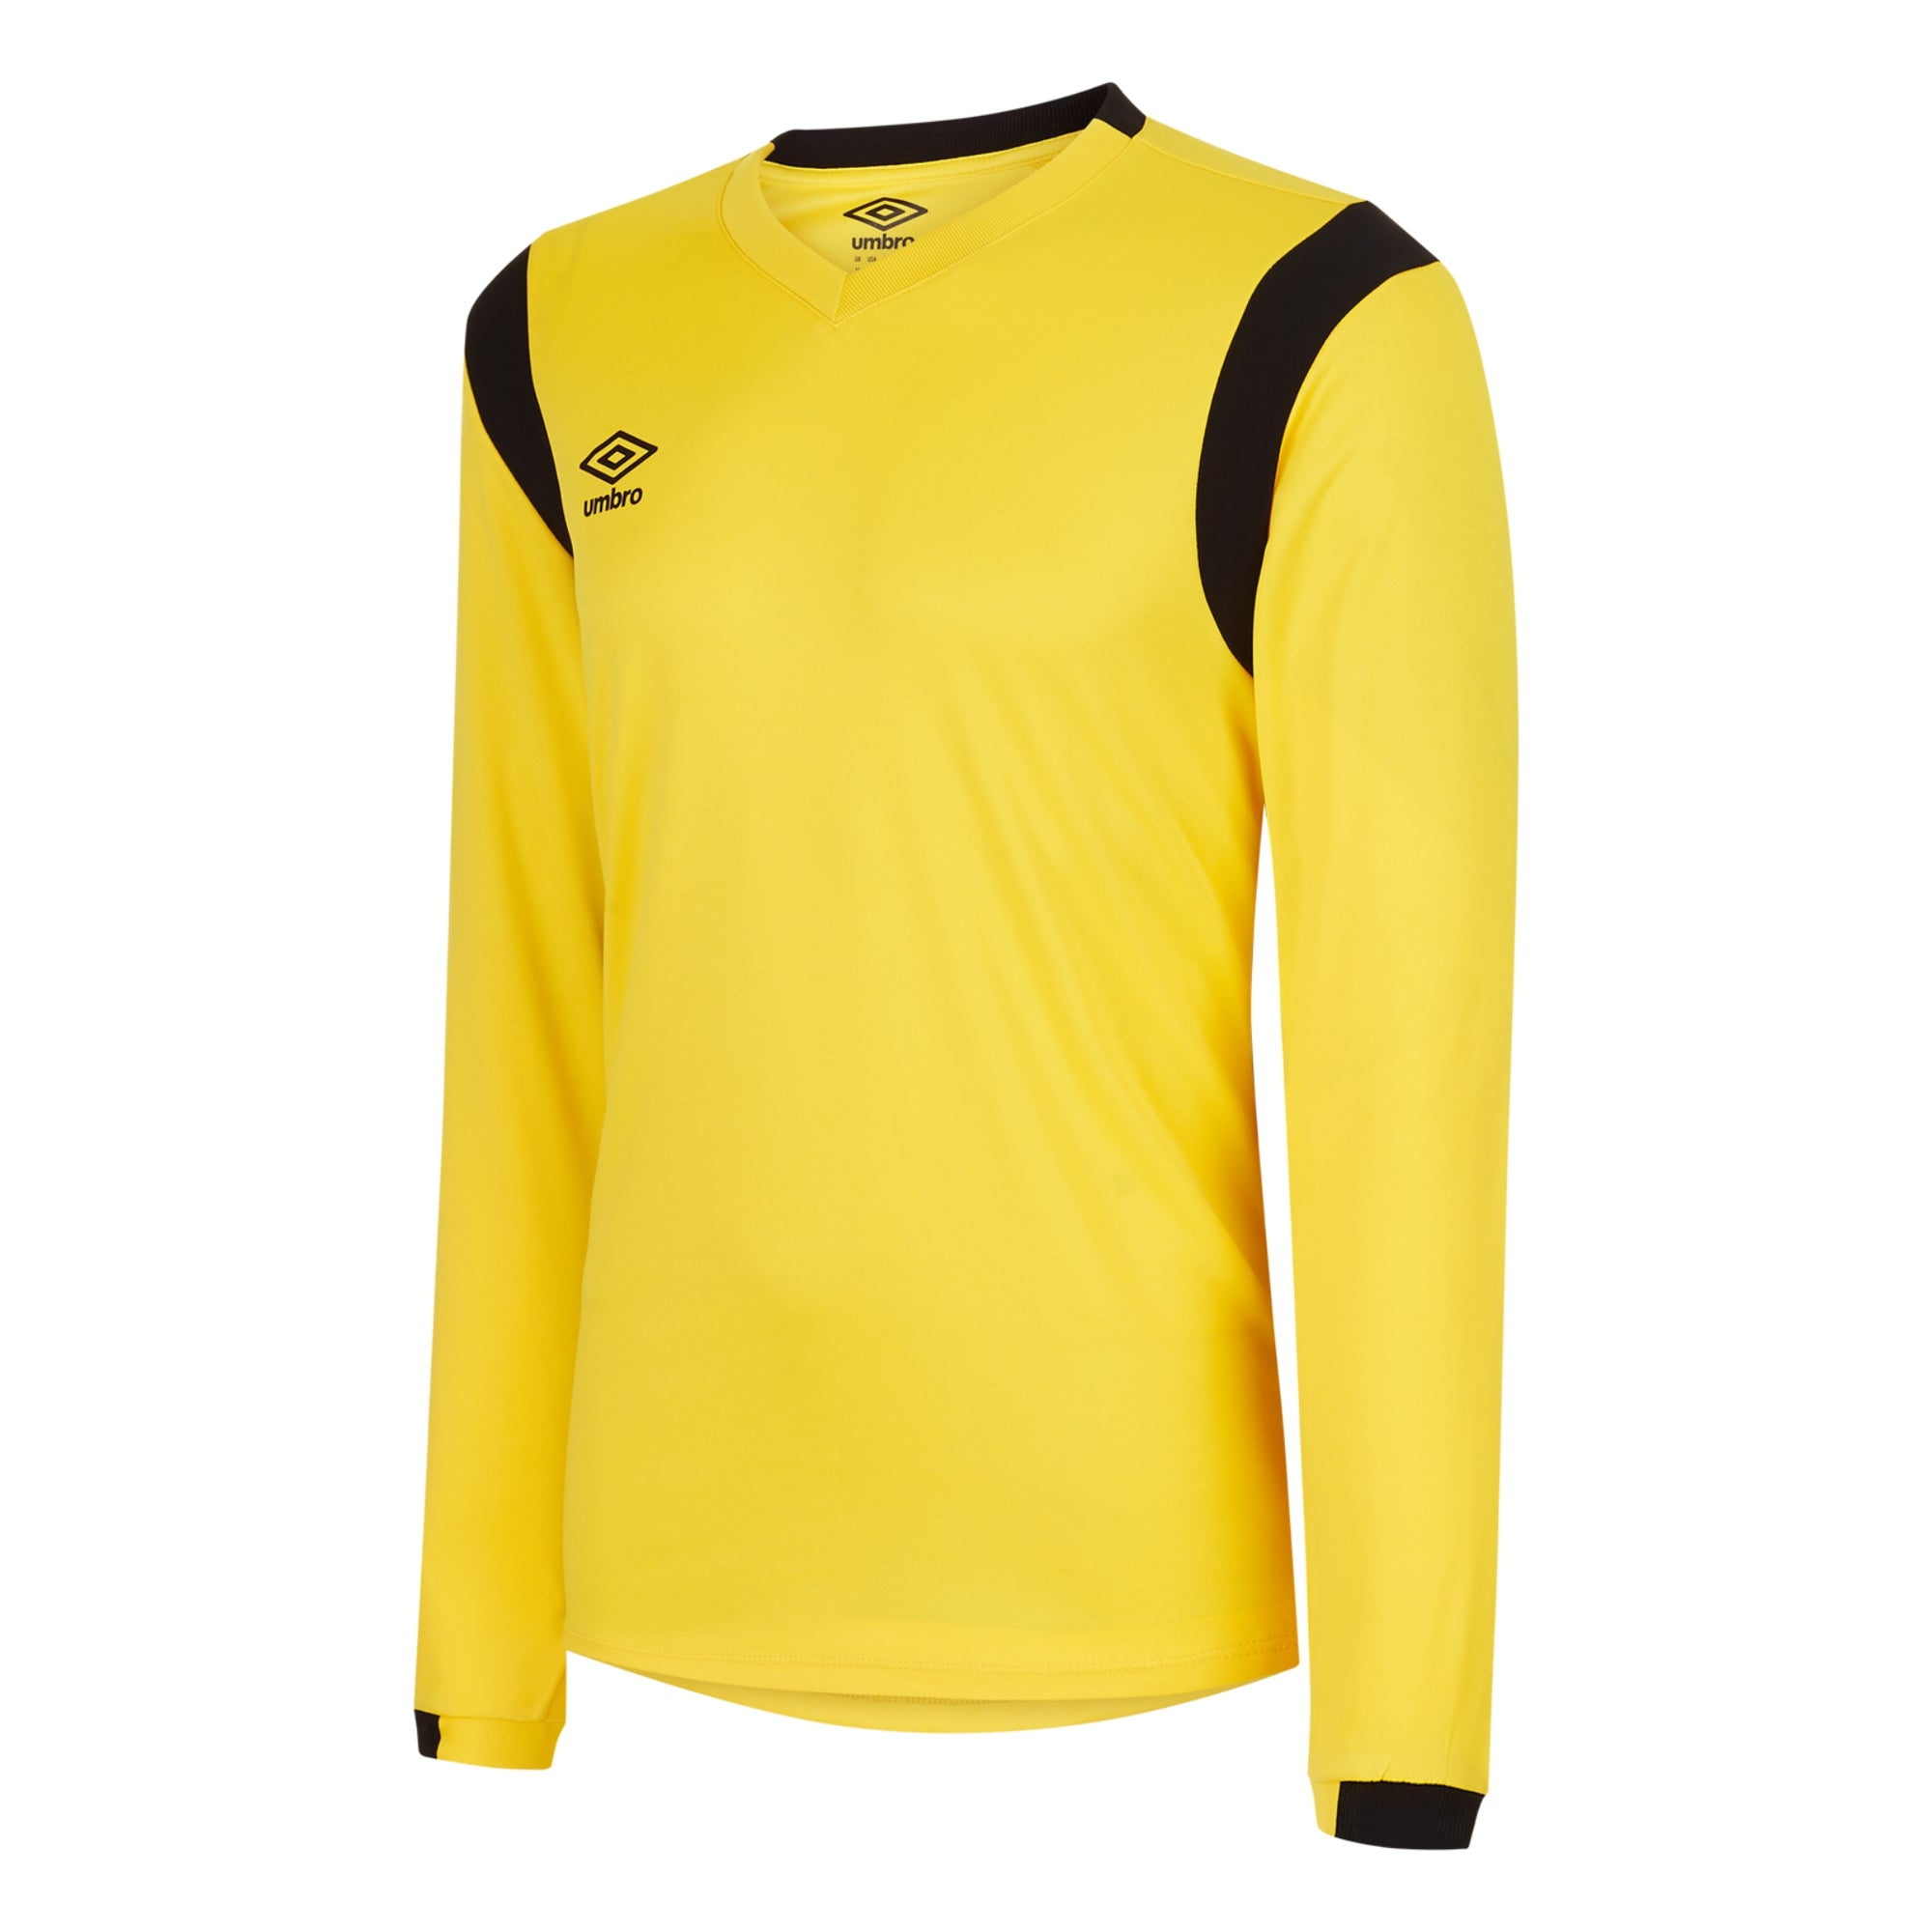 Umbro Spartan Jersey LS - Yellow/Black